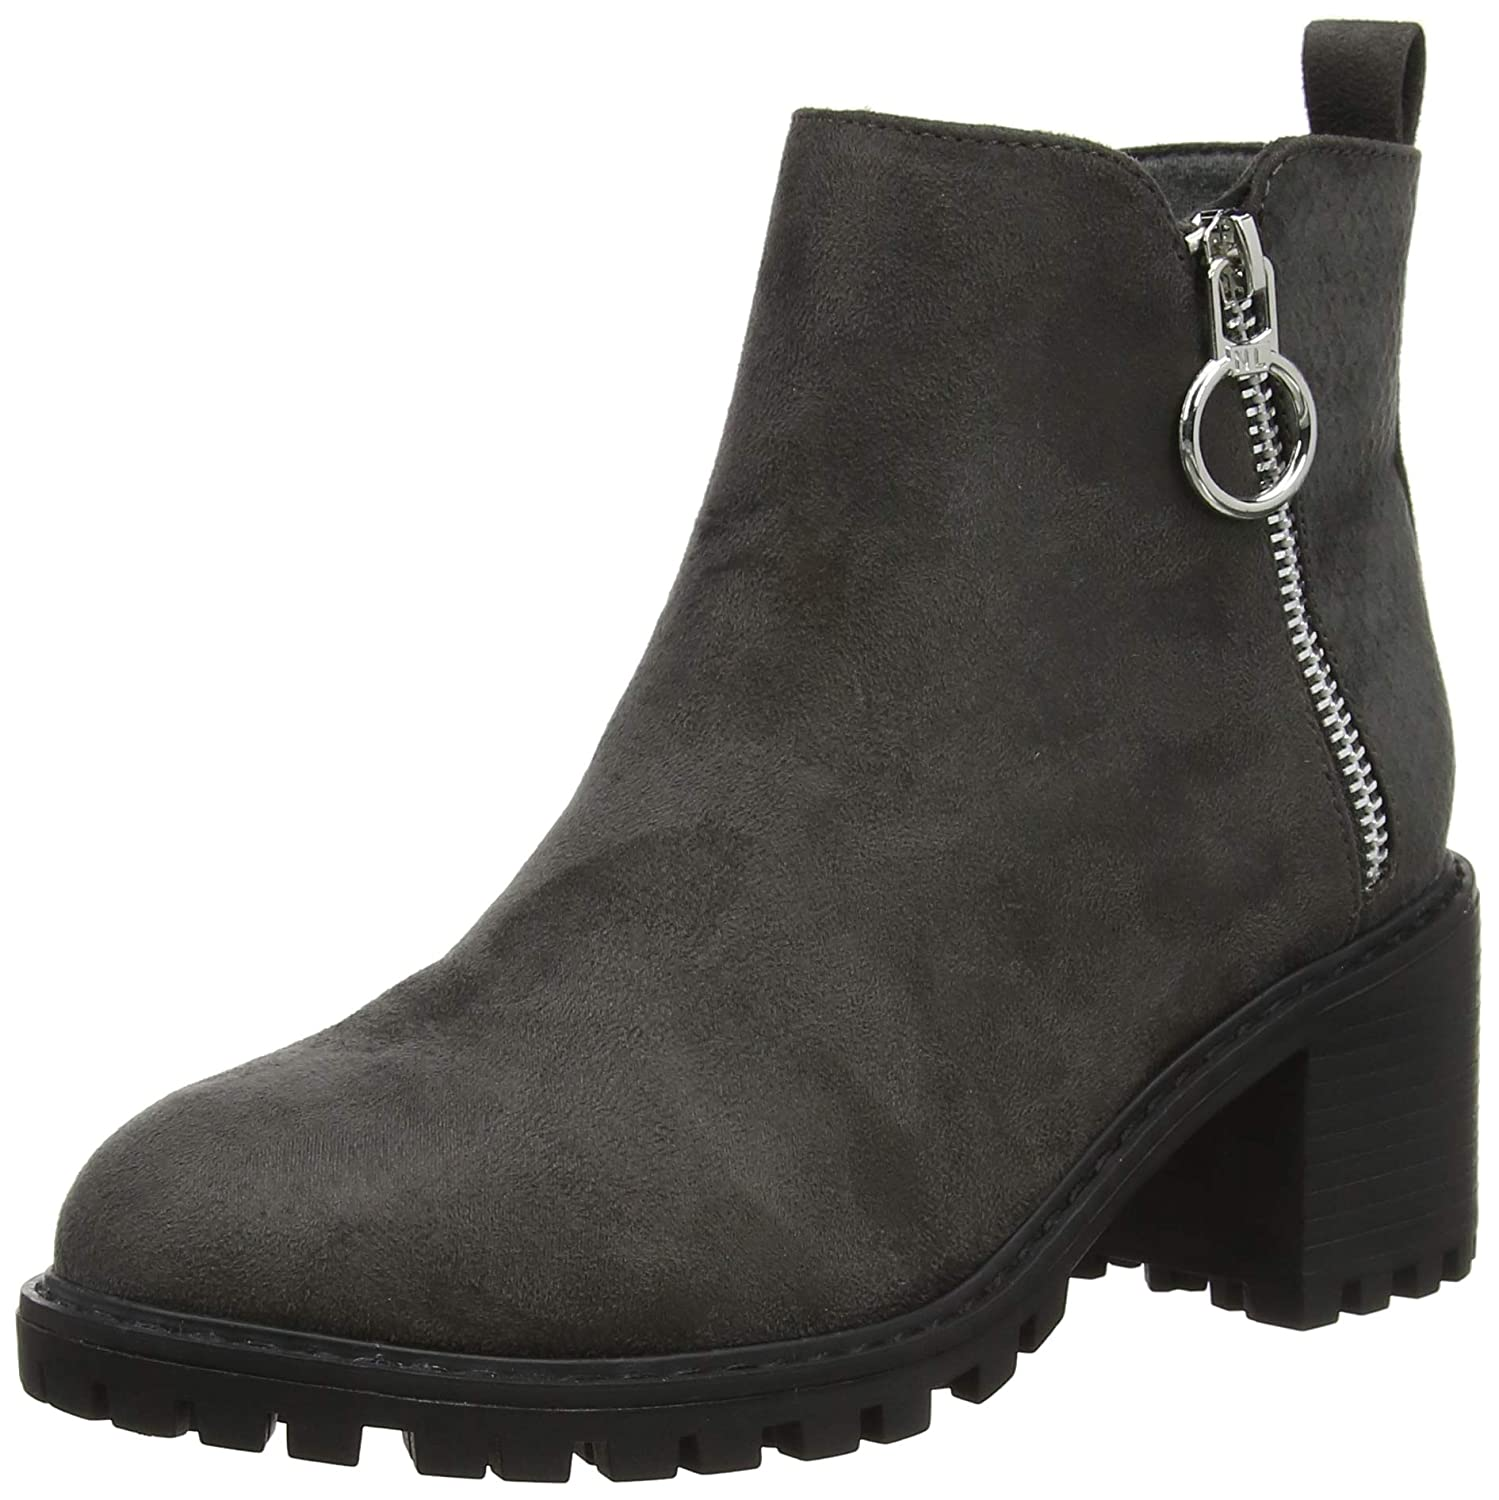 New Look Chile Botines para Mujer, Gris (Mid Grey 4), 40 EU (7 UK): Amazon.es: Zapatos y complementos